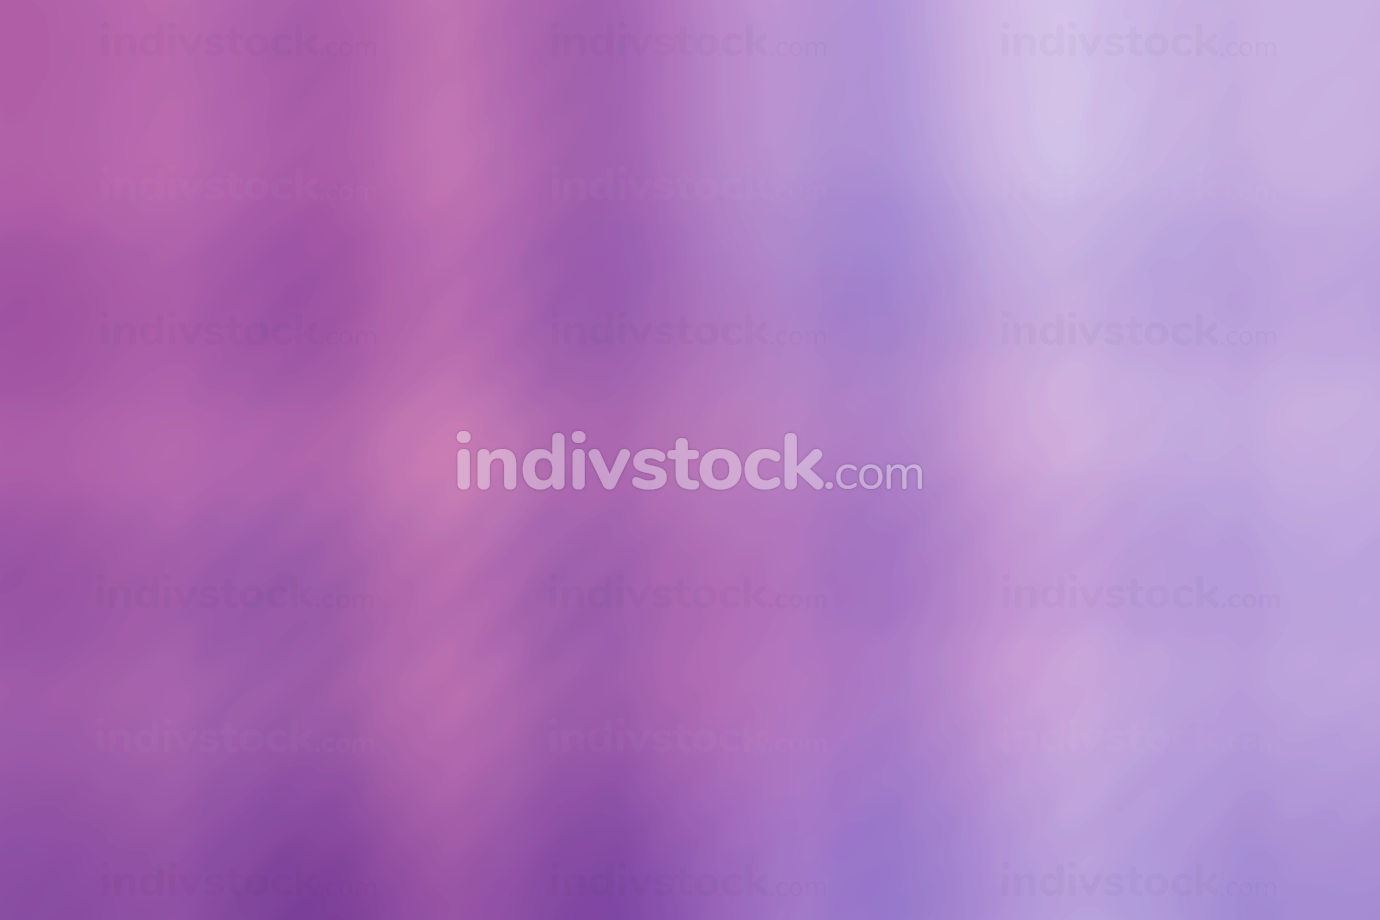 Pink and purple with white color background